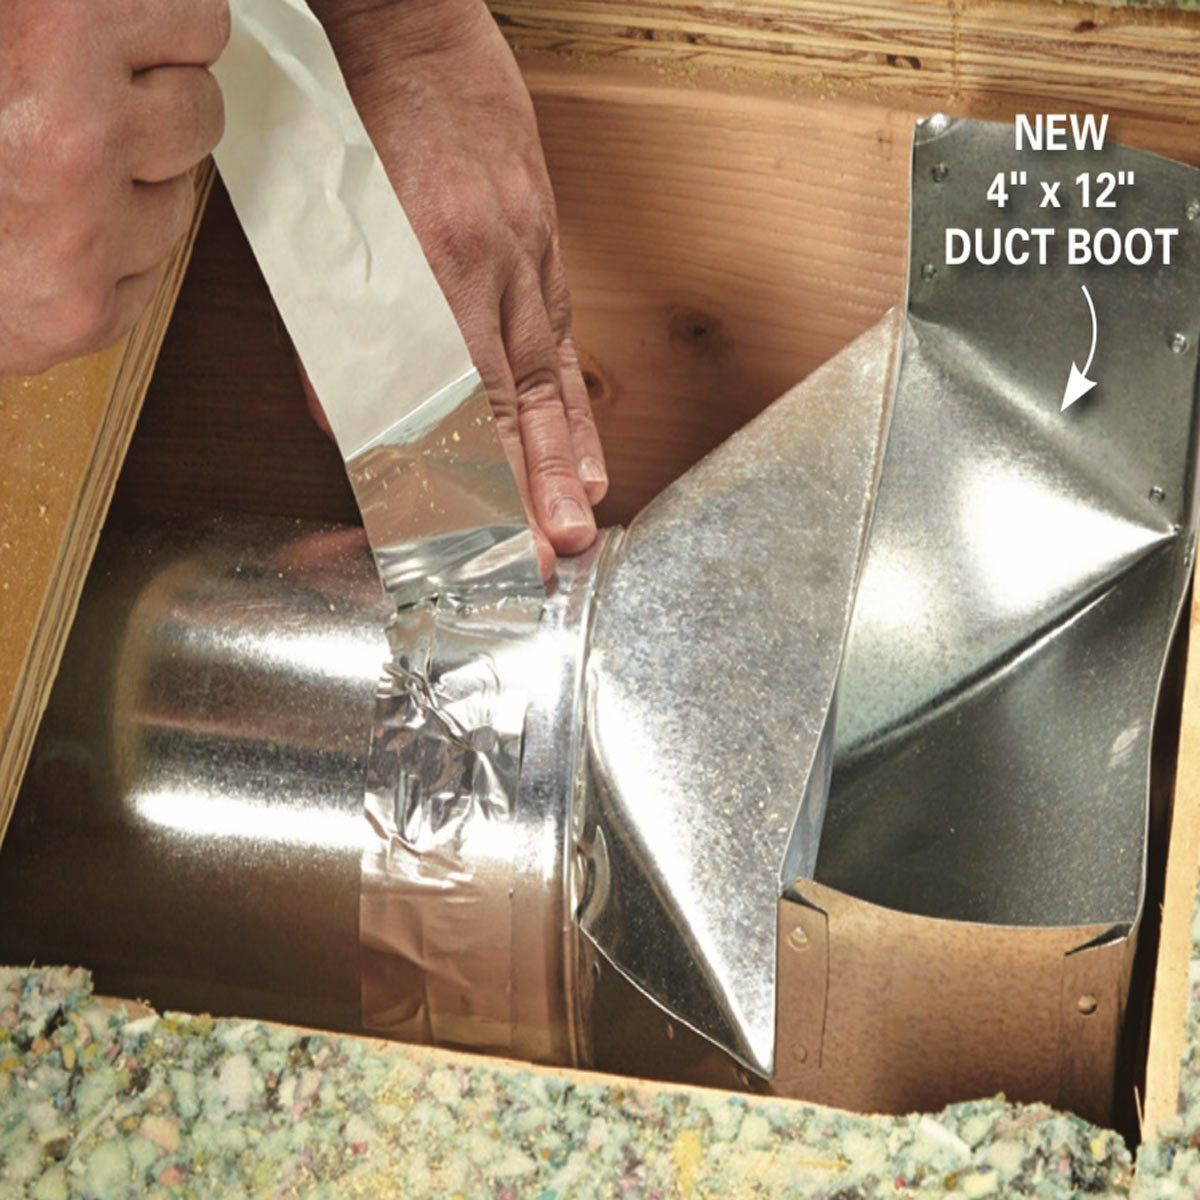 How To Install A Duct Booster Fan Duct Ducted Heating Air Conditioner Maintenance